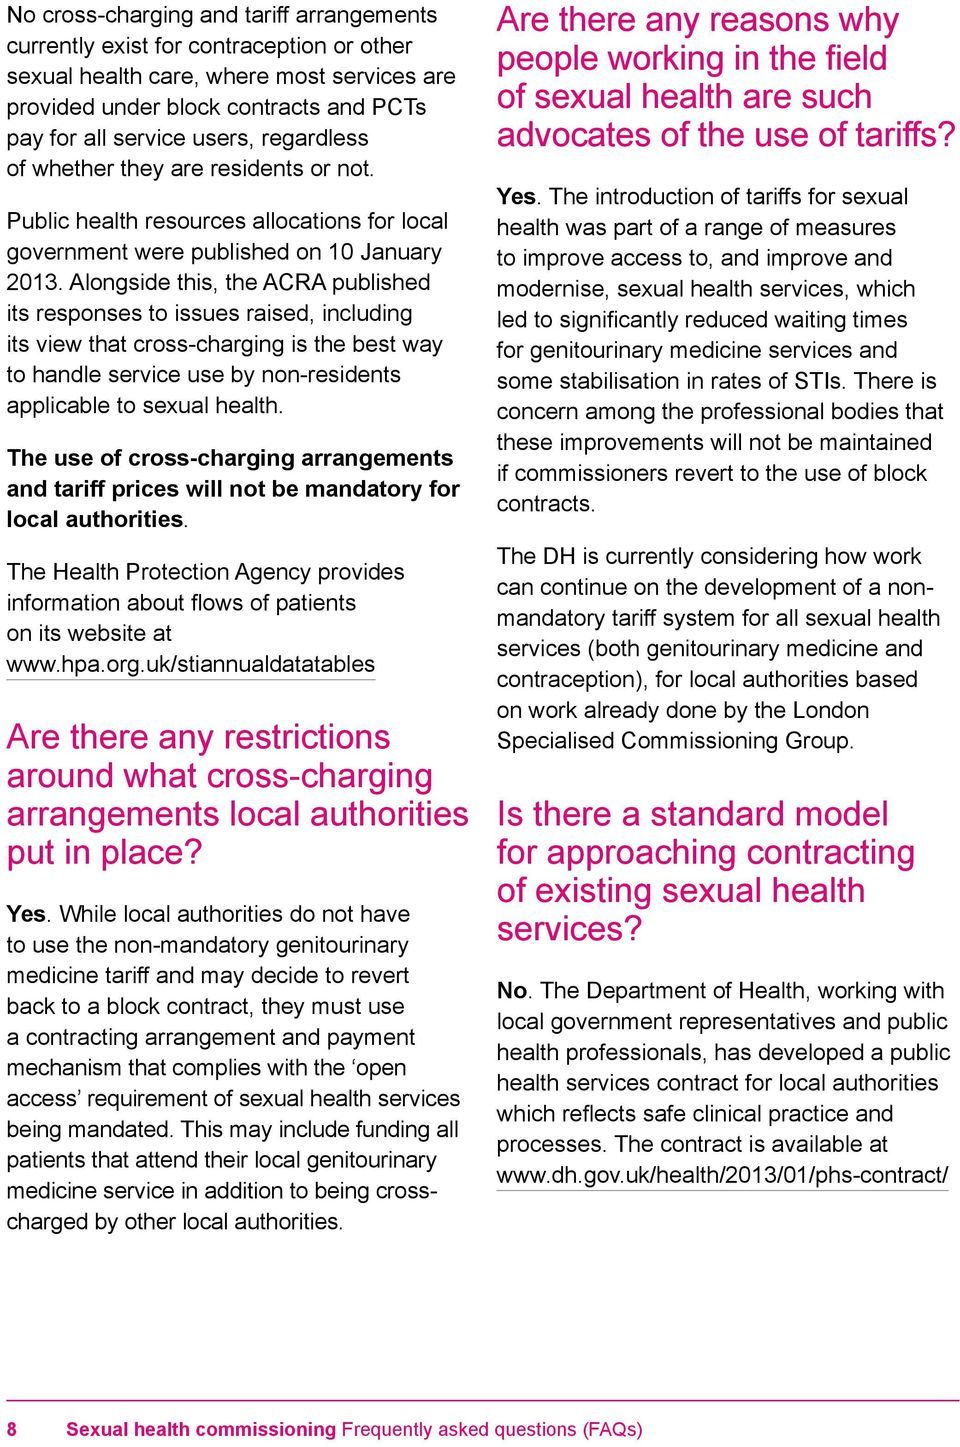 Alongside this, the ACRA published its responses to issues raised, including its view that cross-charging is the best way to handle service use by non-residents applicable to sexual health.